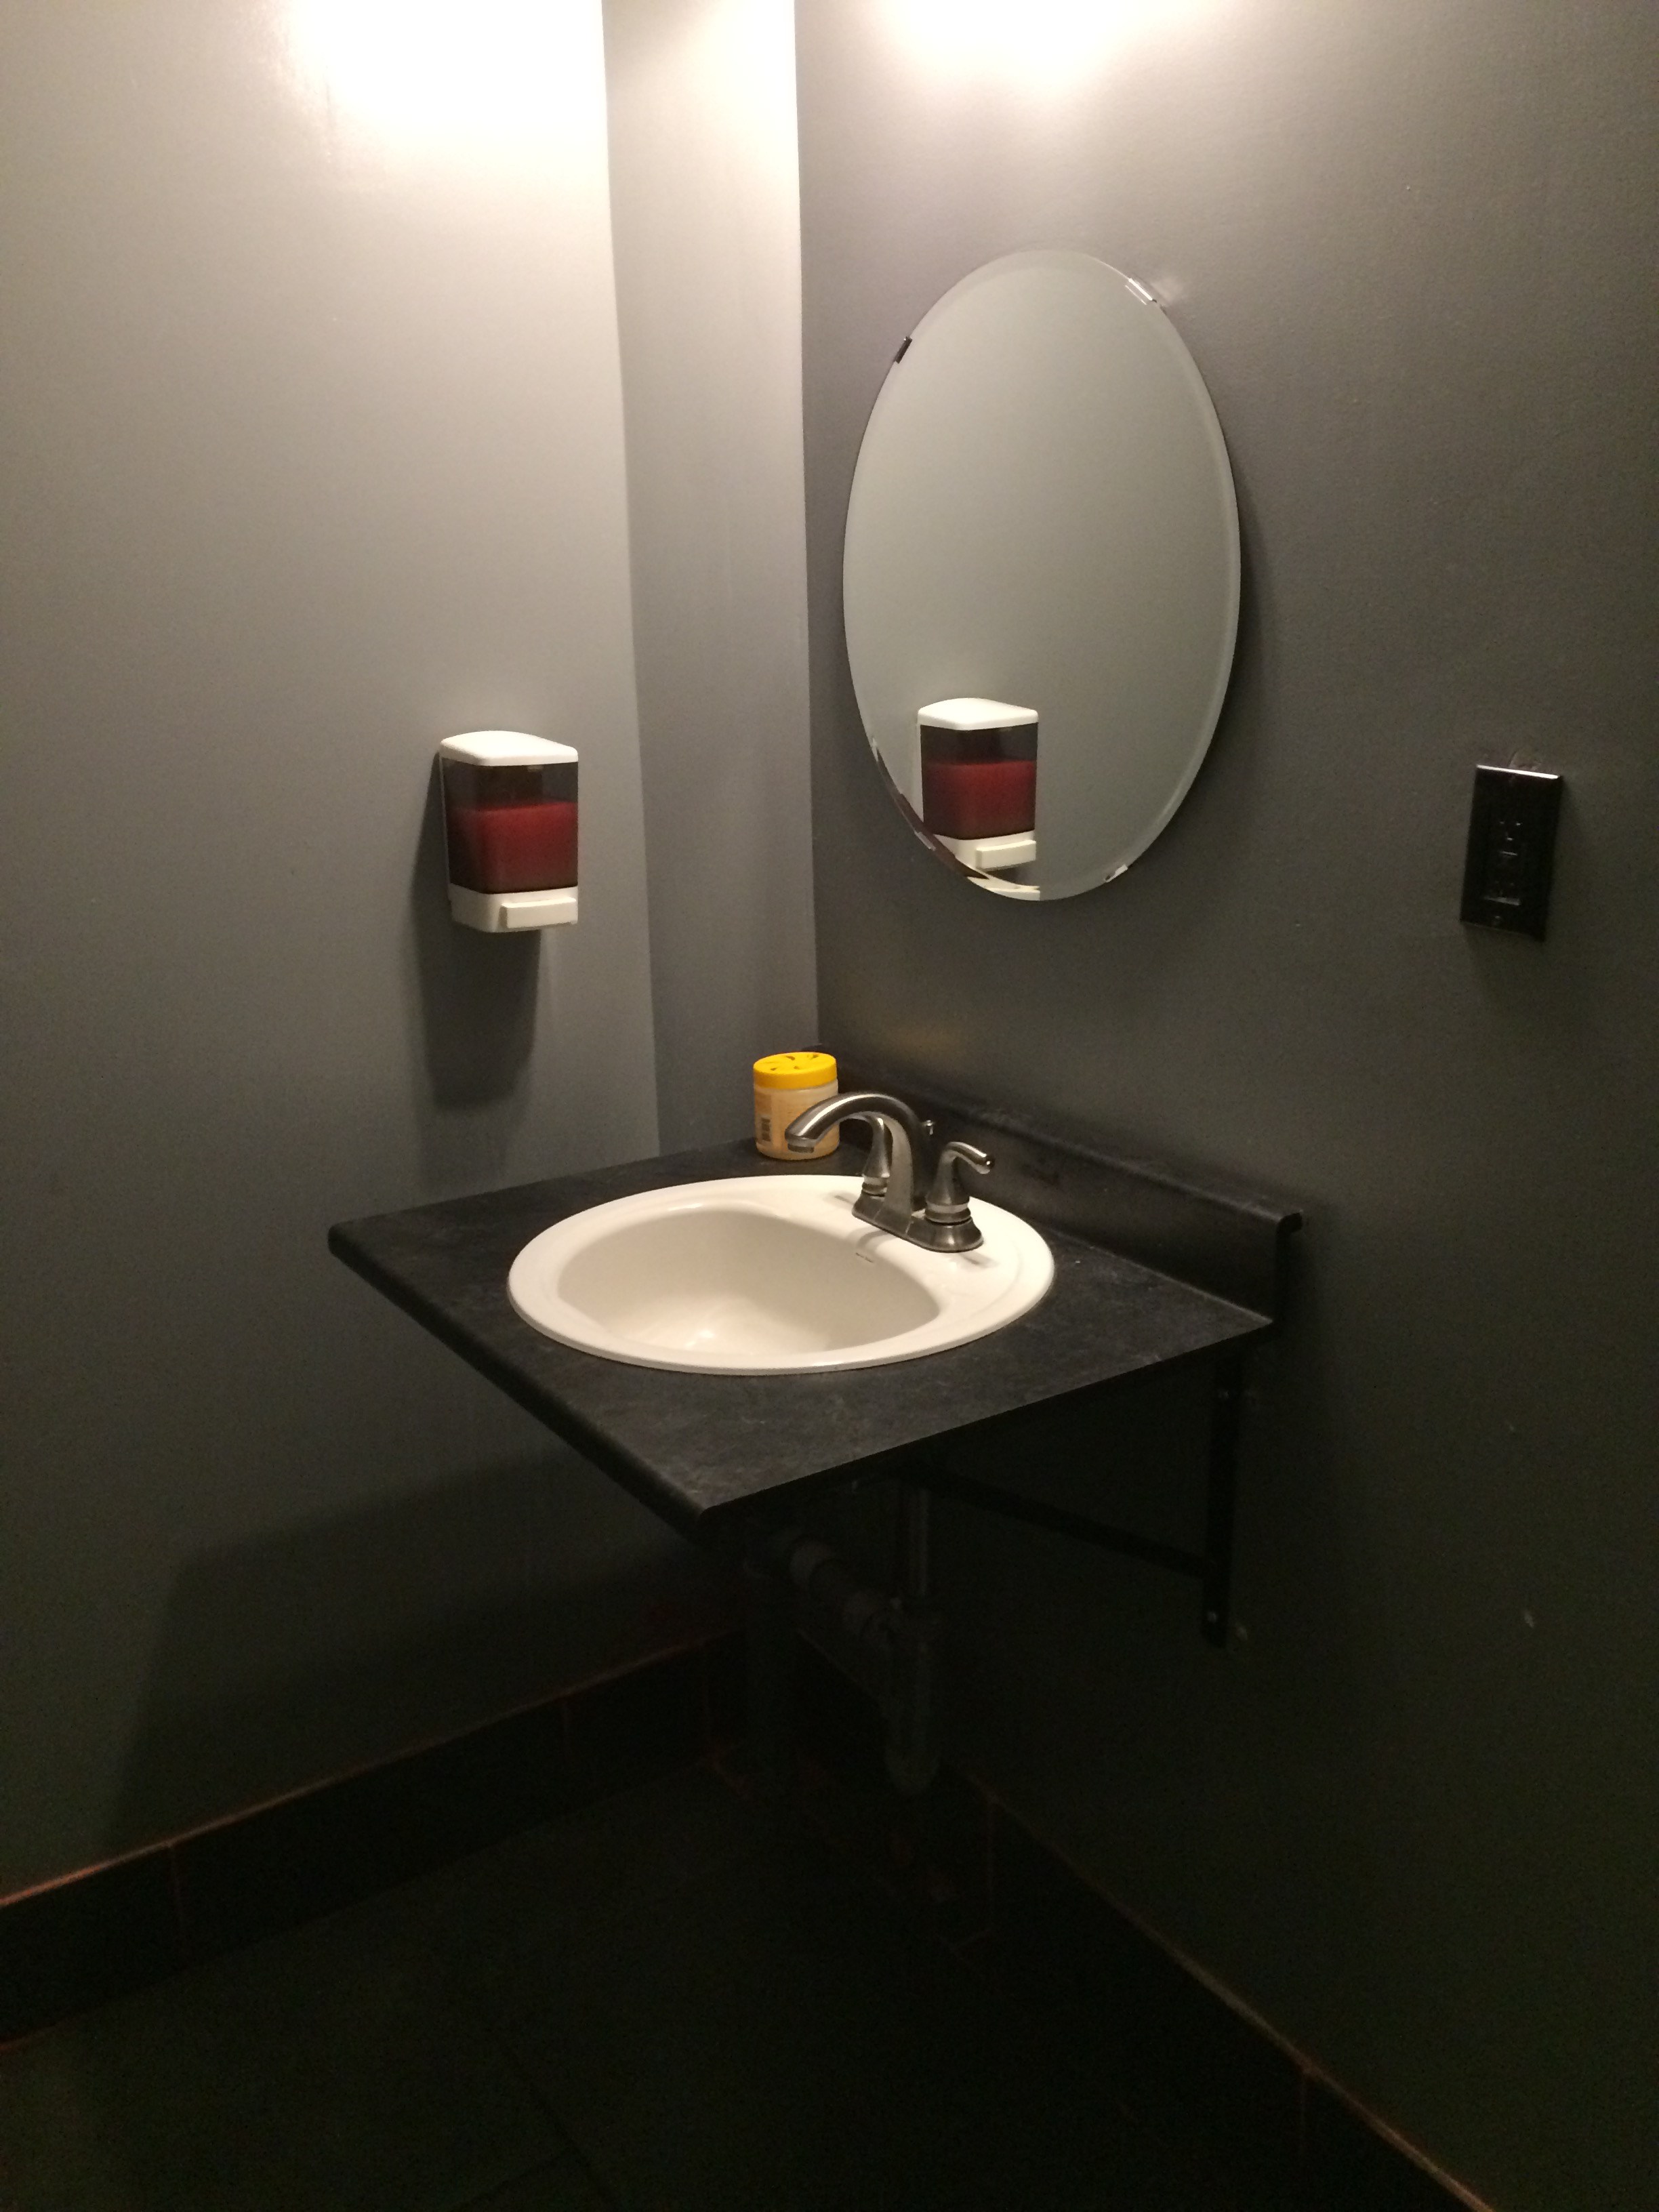 Accessible bathroom at grillies.